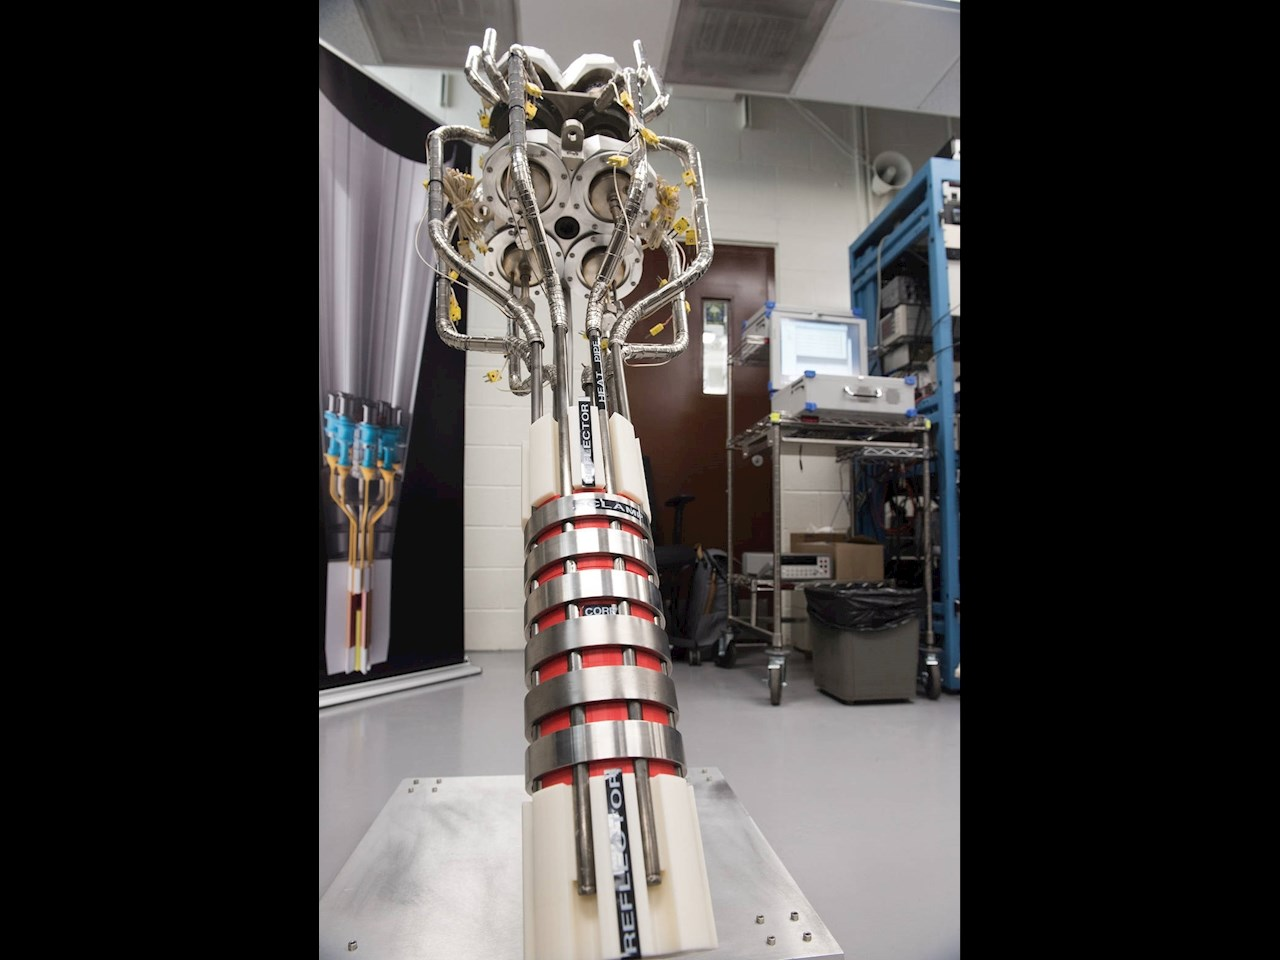 A power system prototype on display in the Stirling Research Lab on May 2, 2018